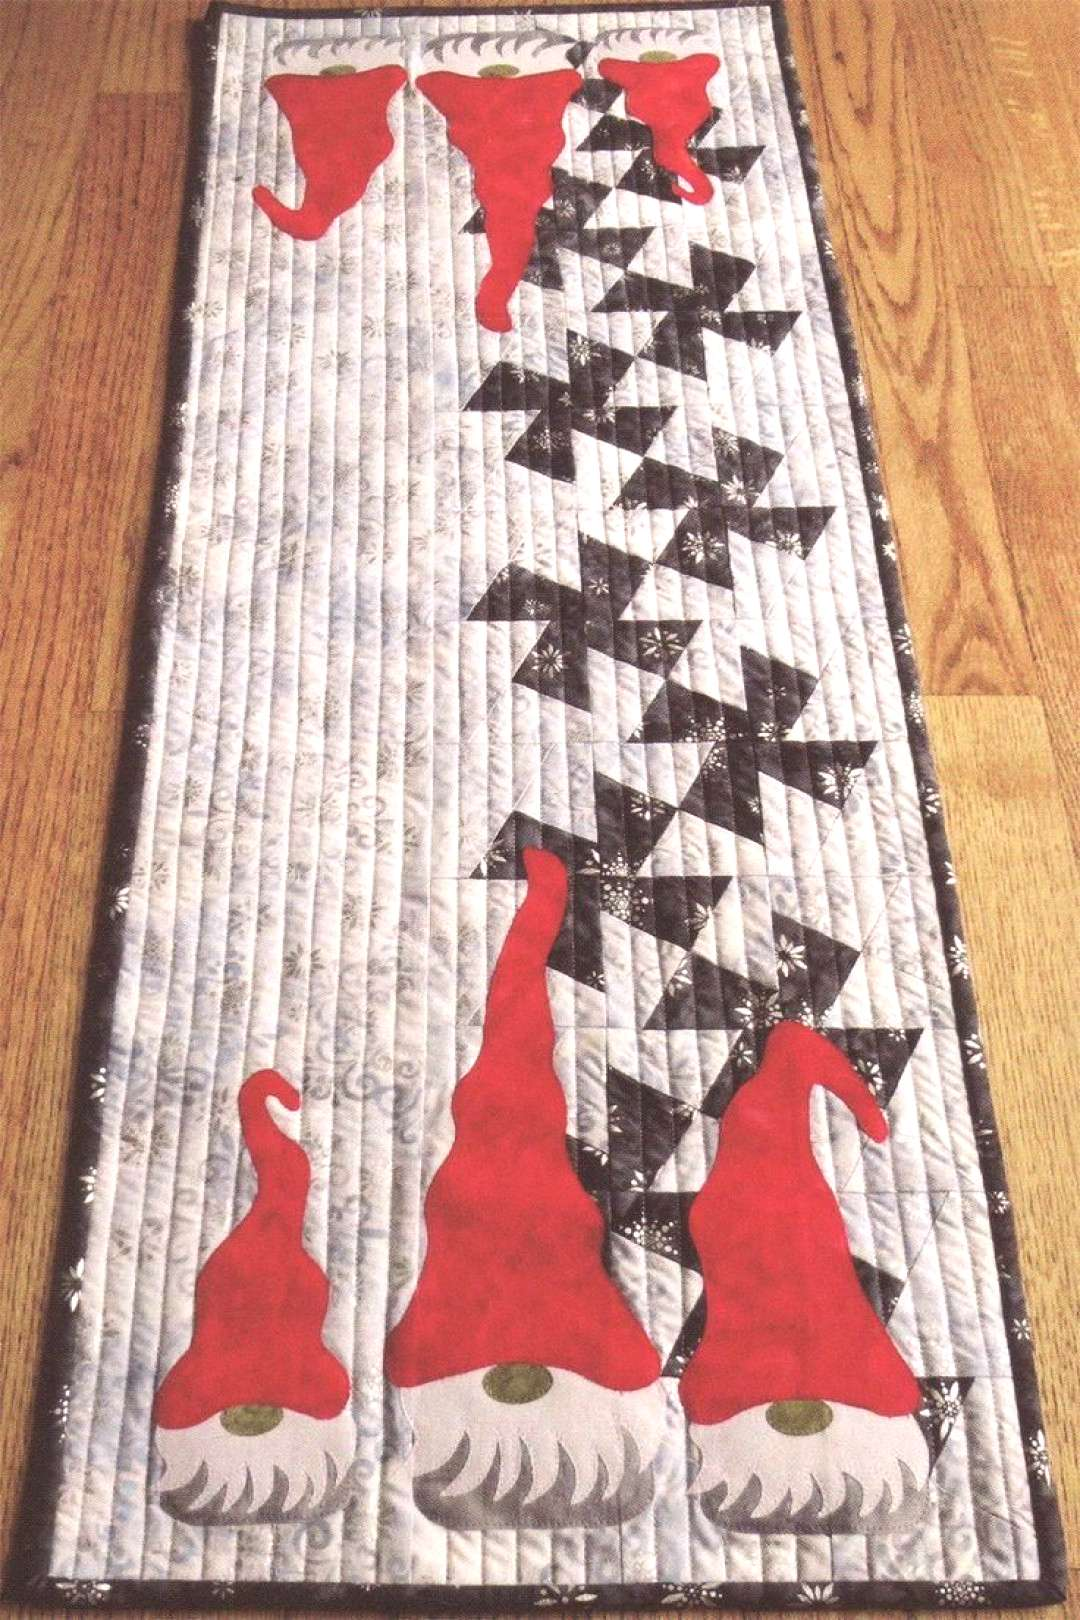 Twister Gnomes table runner sewing pattern from Around The Bobbin